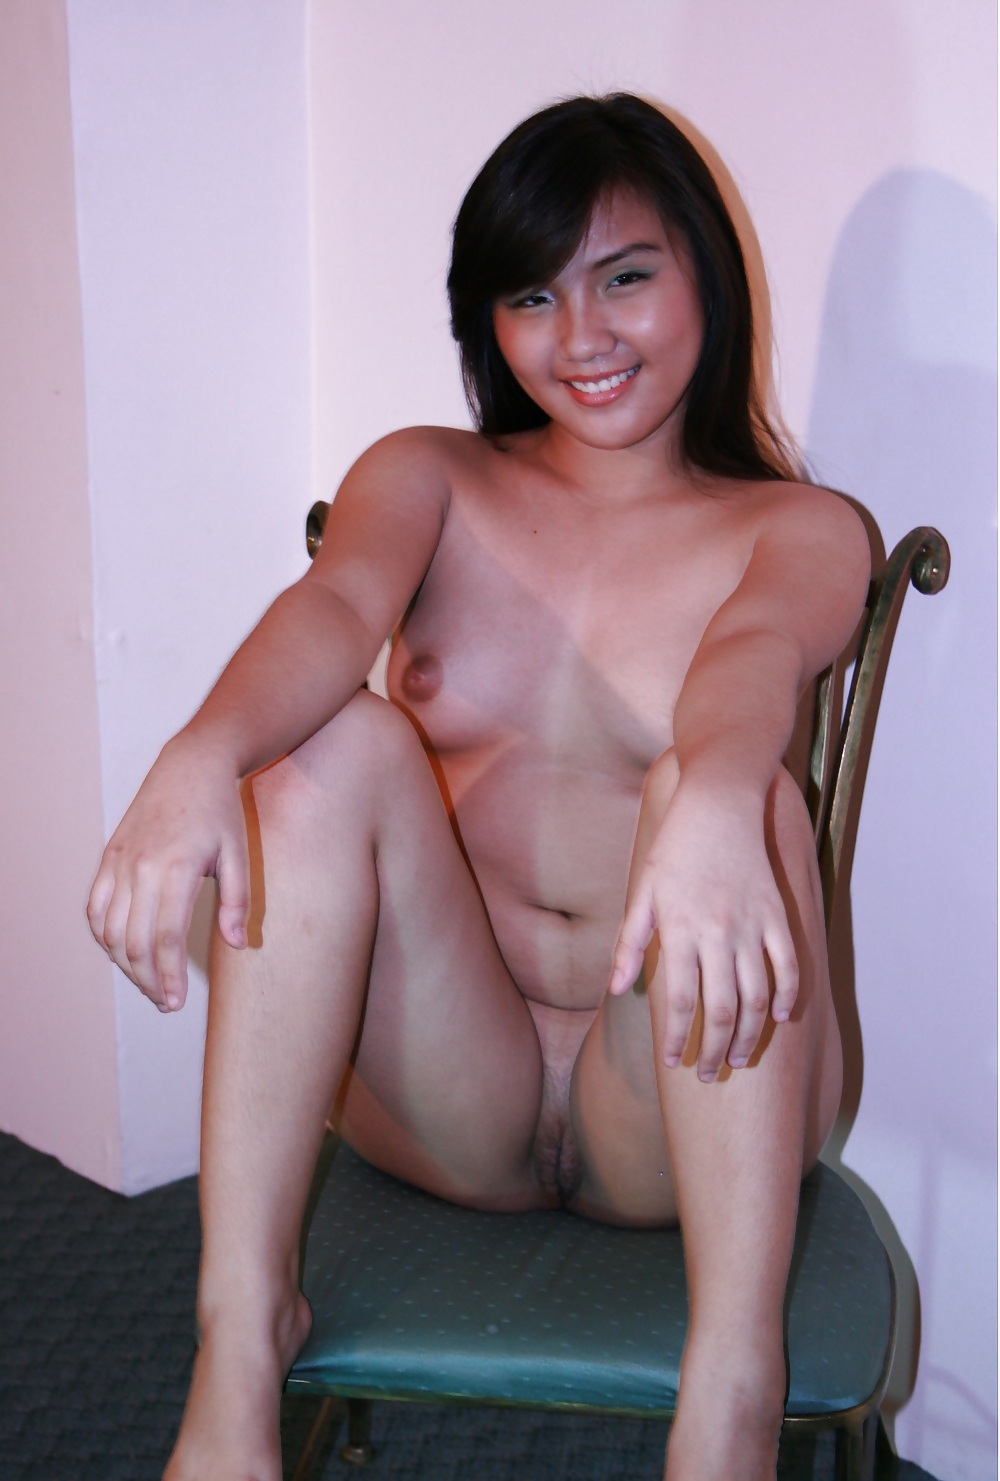 Pinay celebrity topless